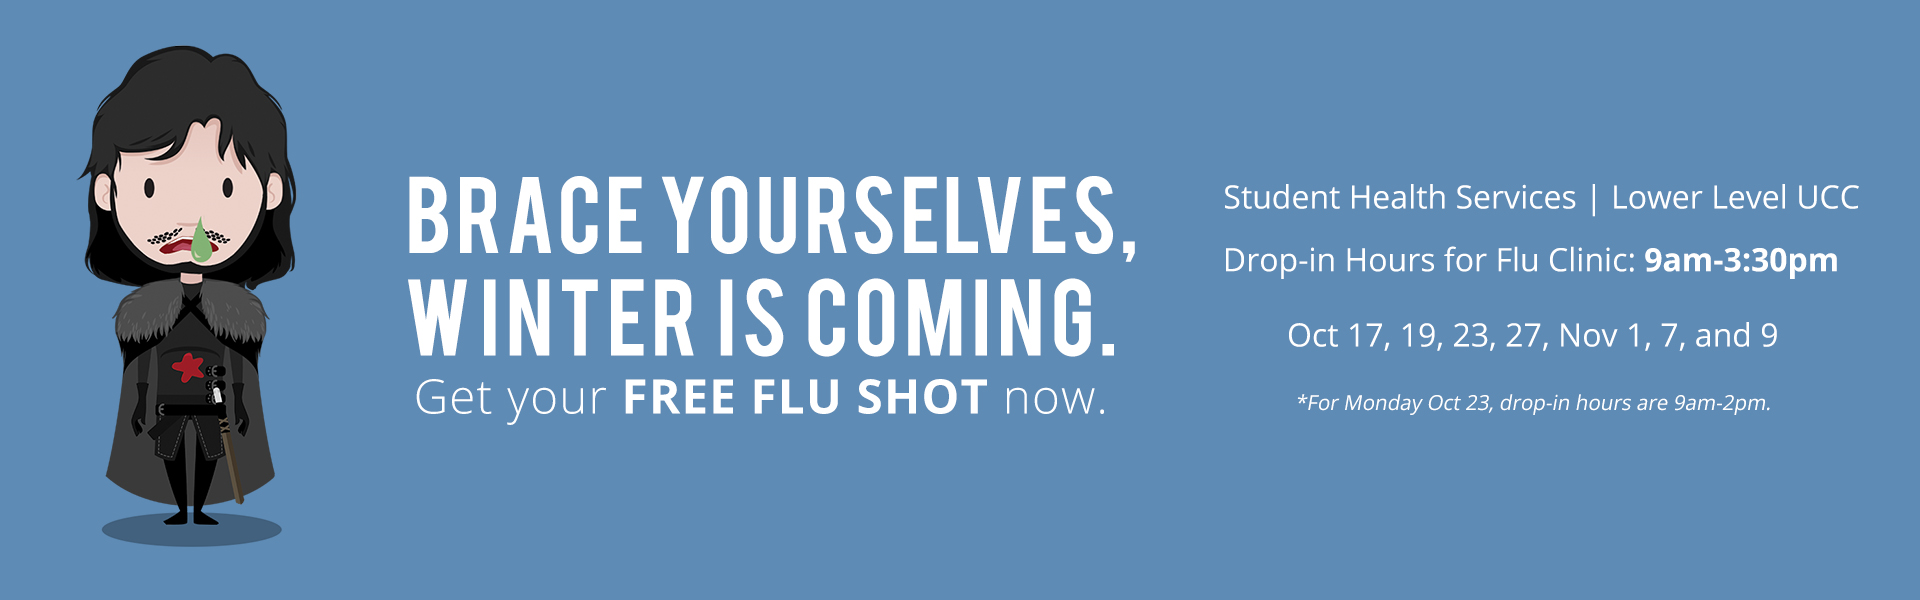 Free flu shots are now available from Student Health Services. Click for more information.